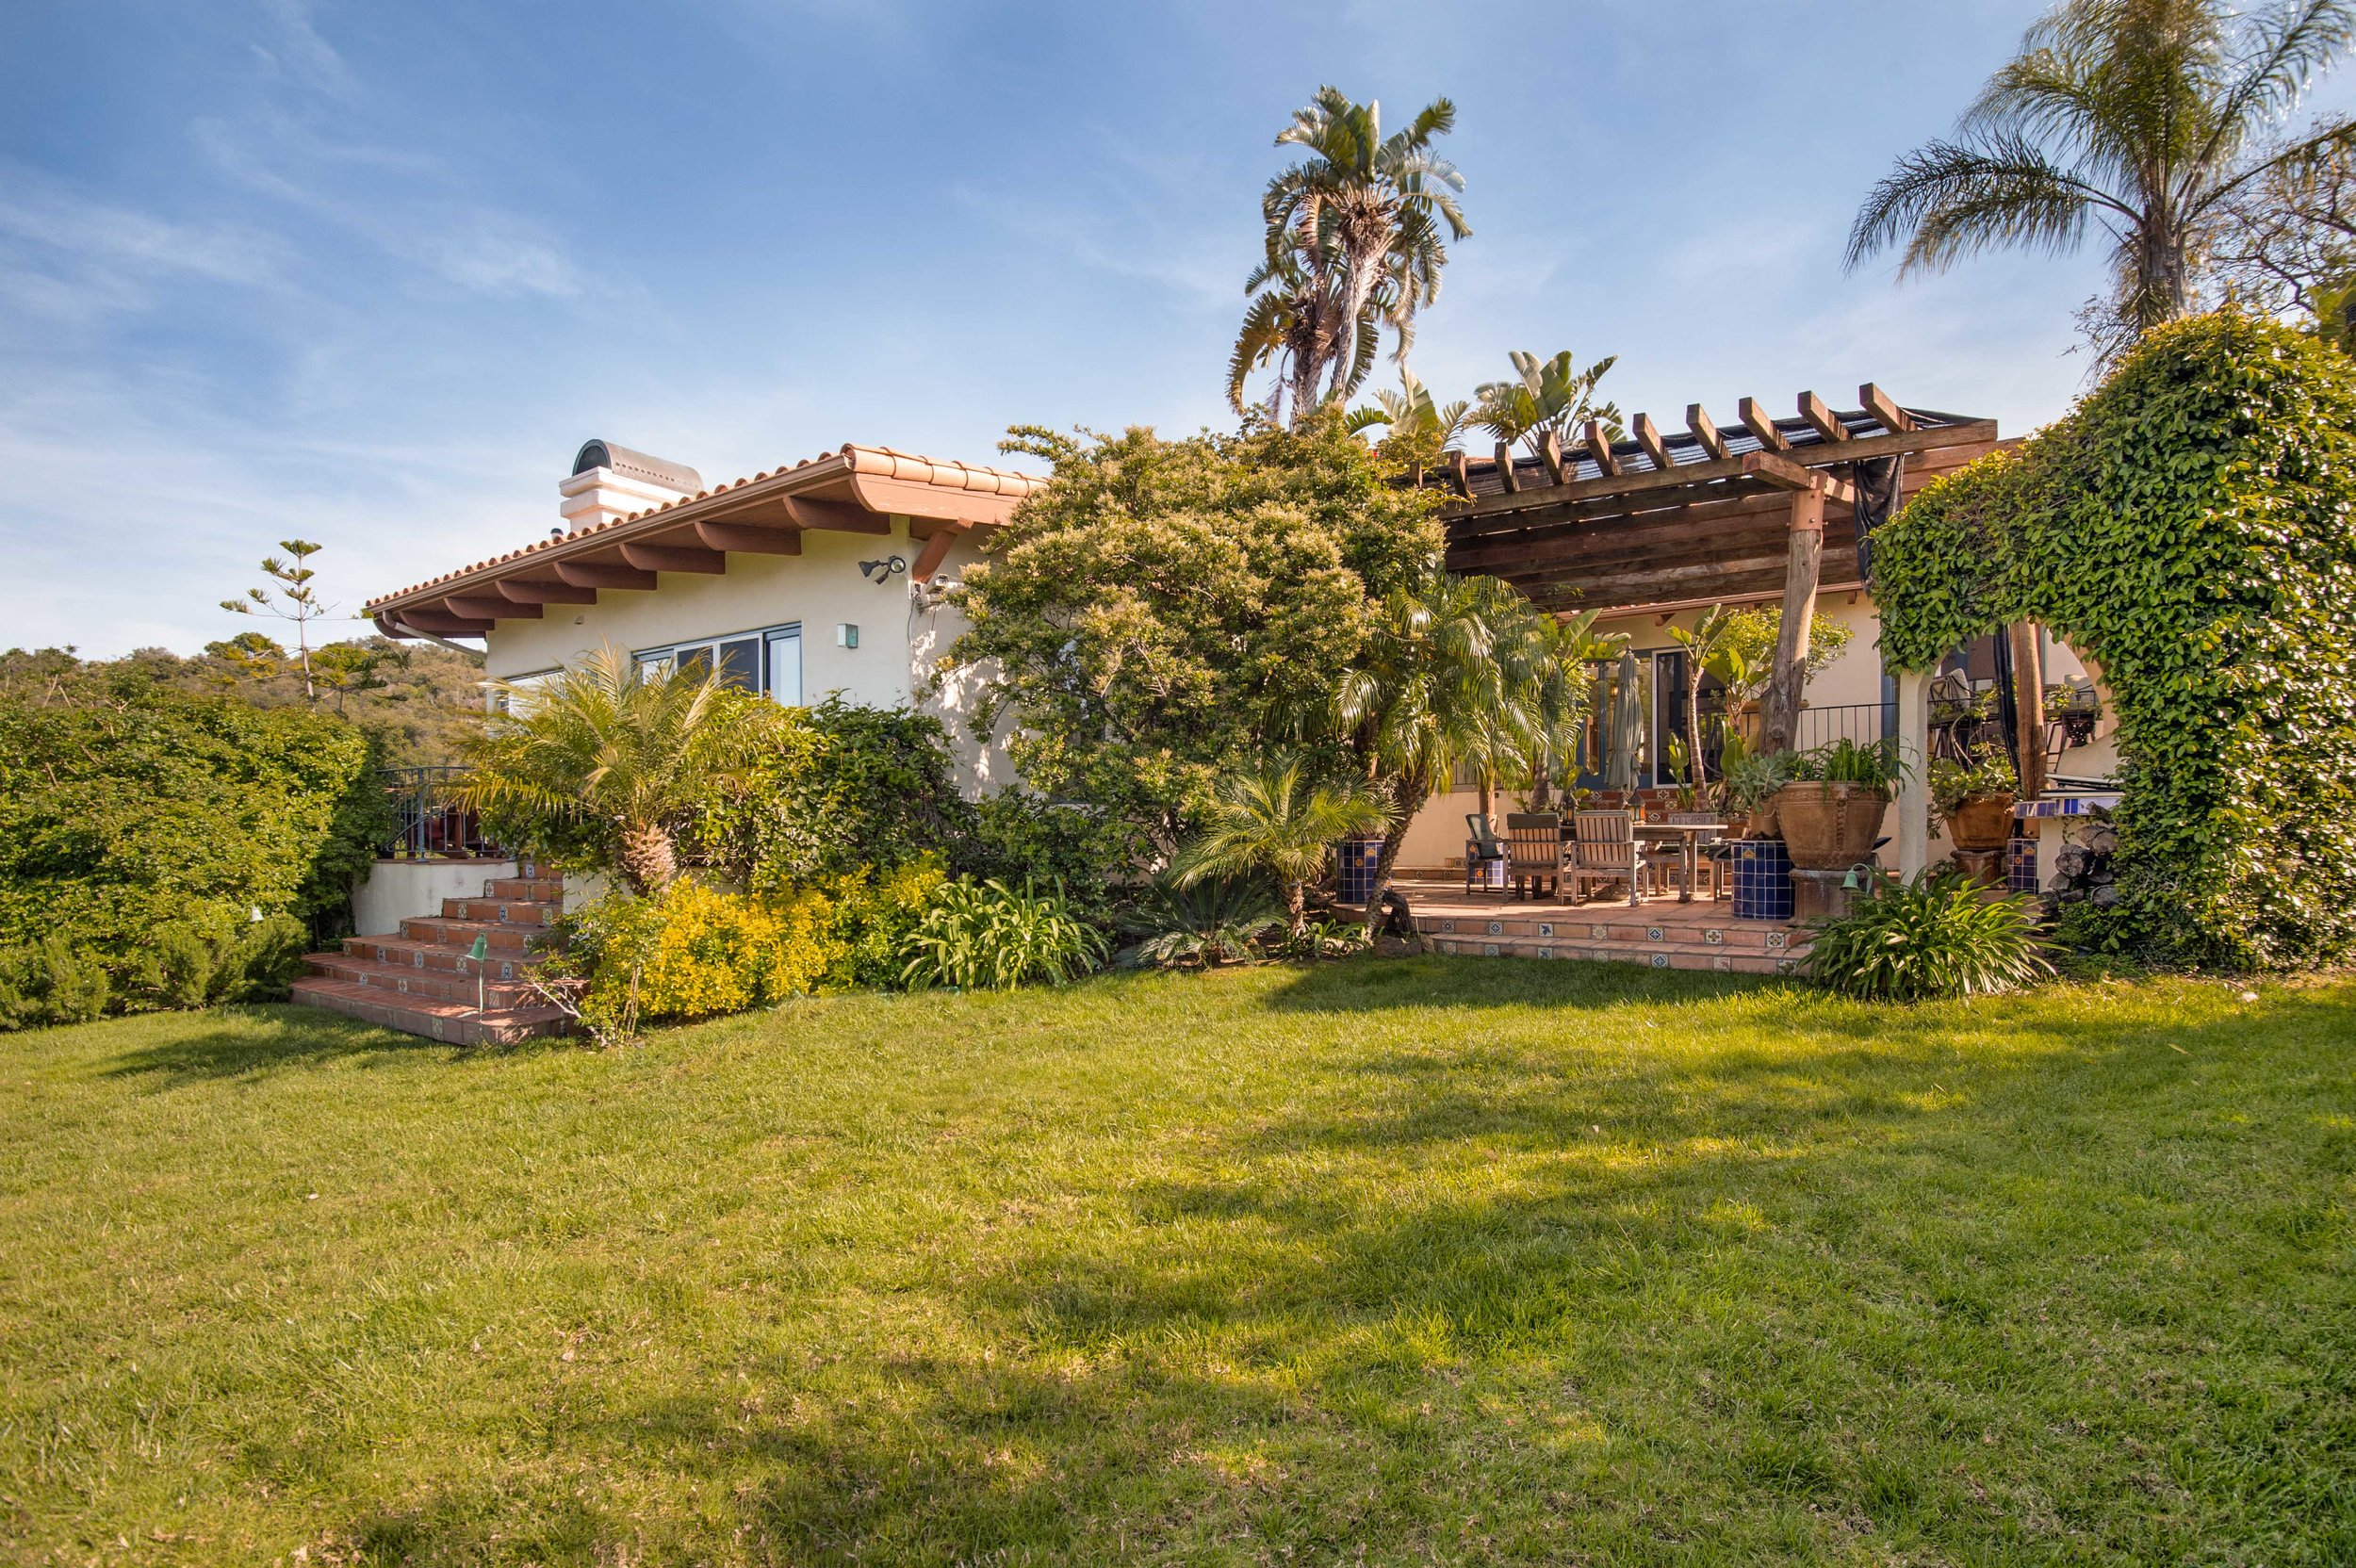 010 Yard 20333 Reigate Road Topanga For Sale Lease The Malibu Life Team Luxury Real Estate.jpg